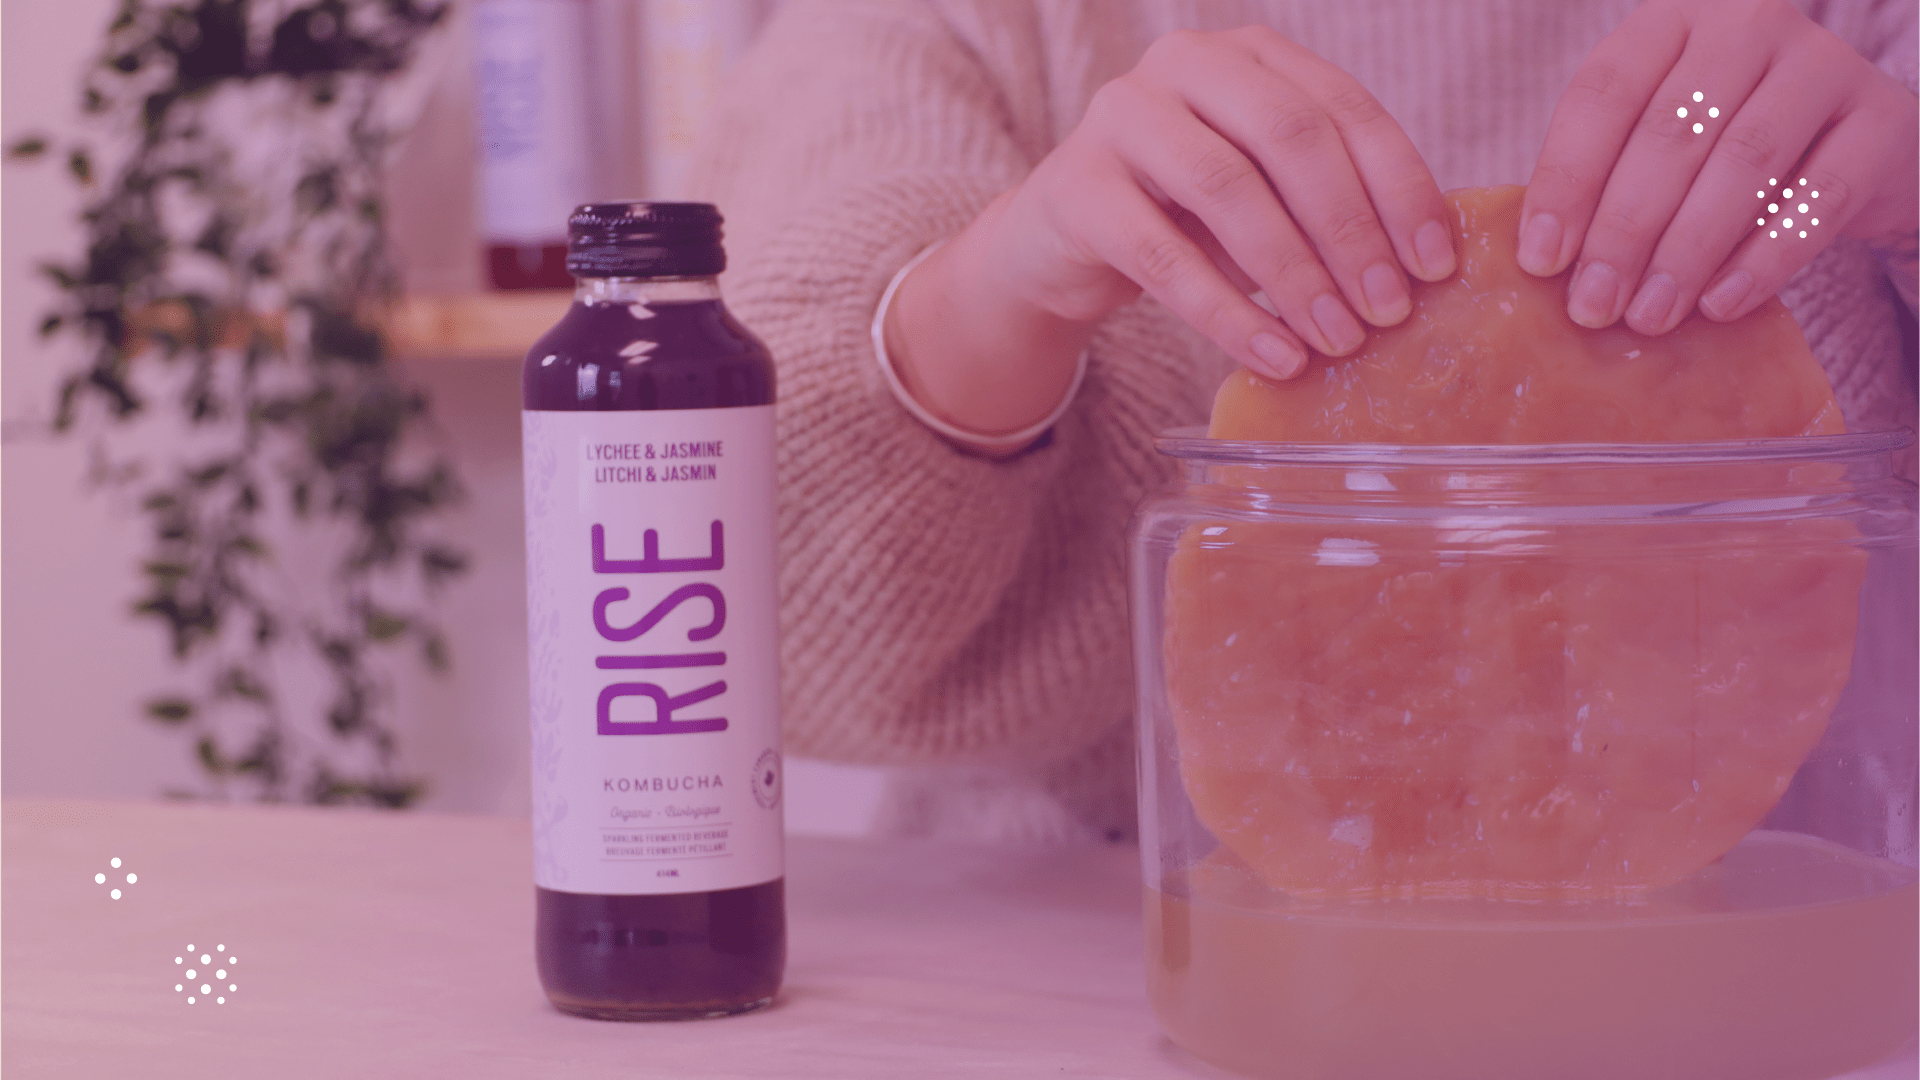 RISE kombucha placed next to SCOBY bacteria